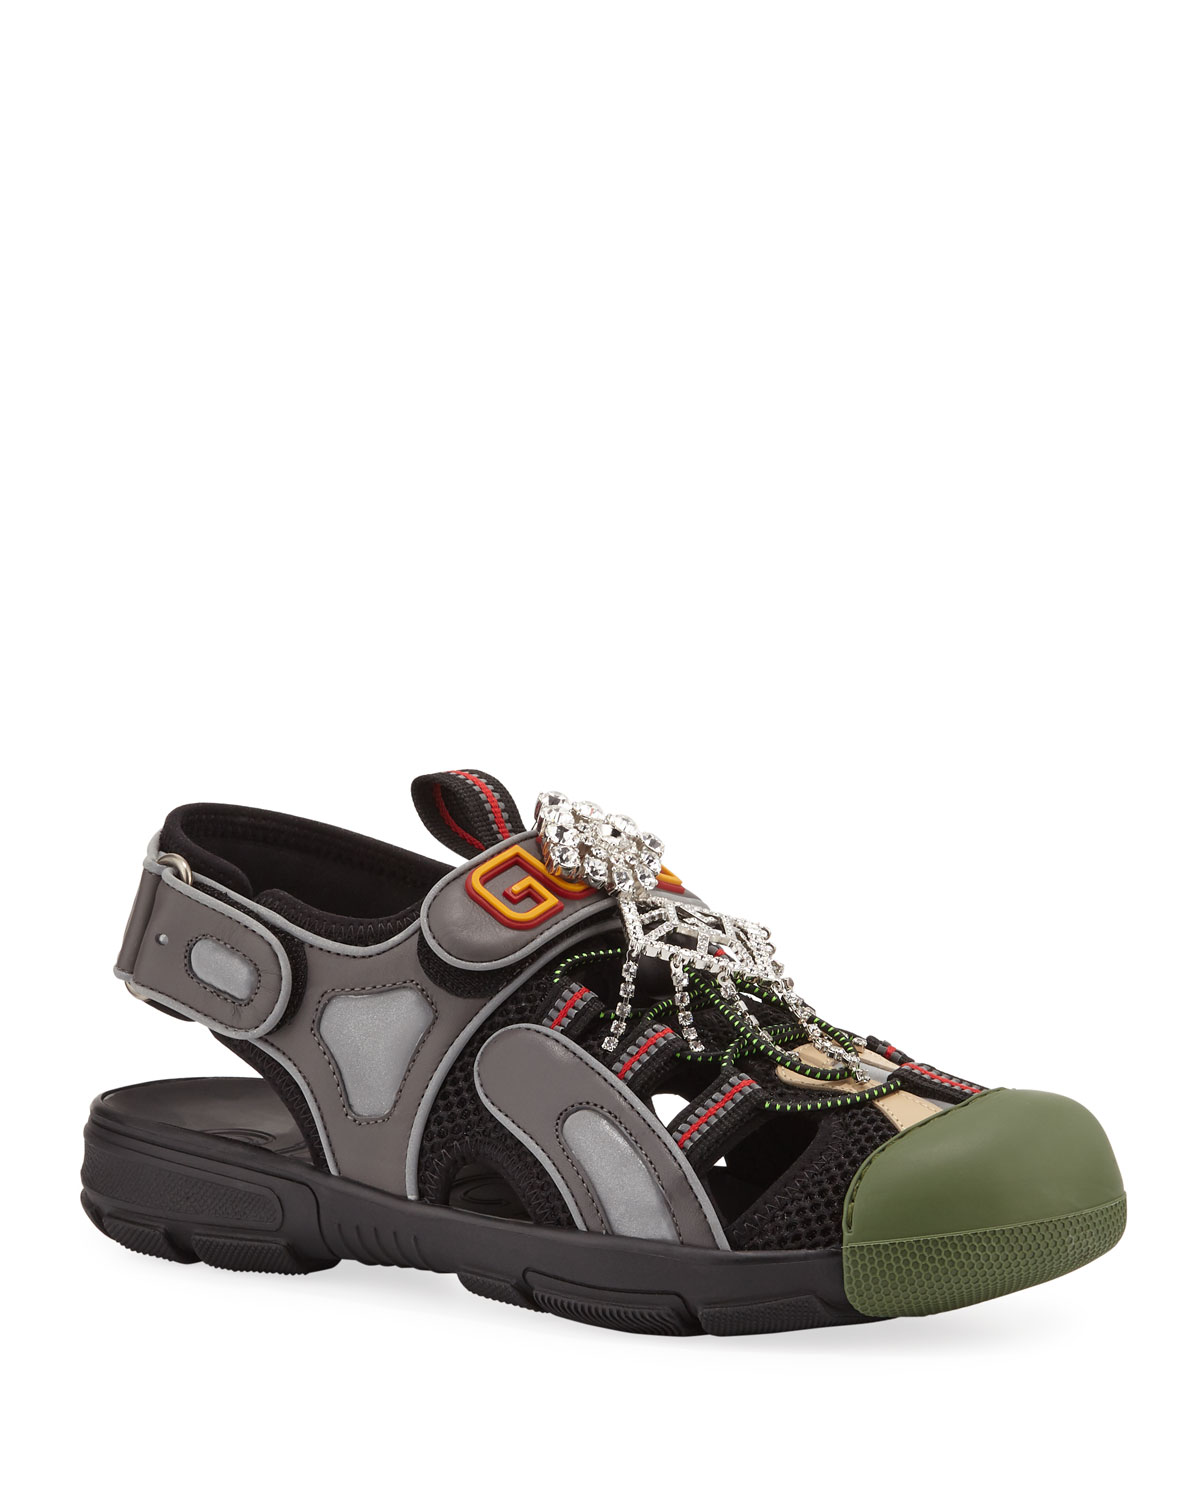 722503a016e9 Gucci Tinsel Embellished Sneaker-Style Sandals